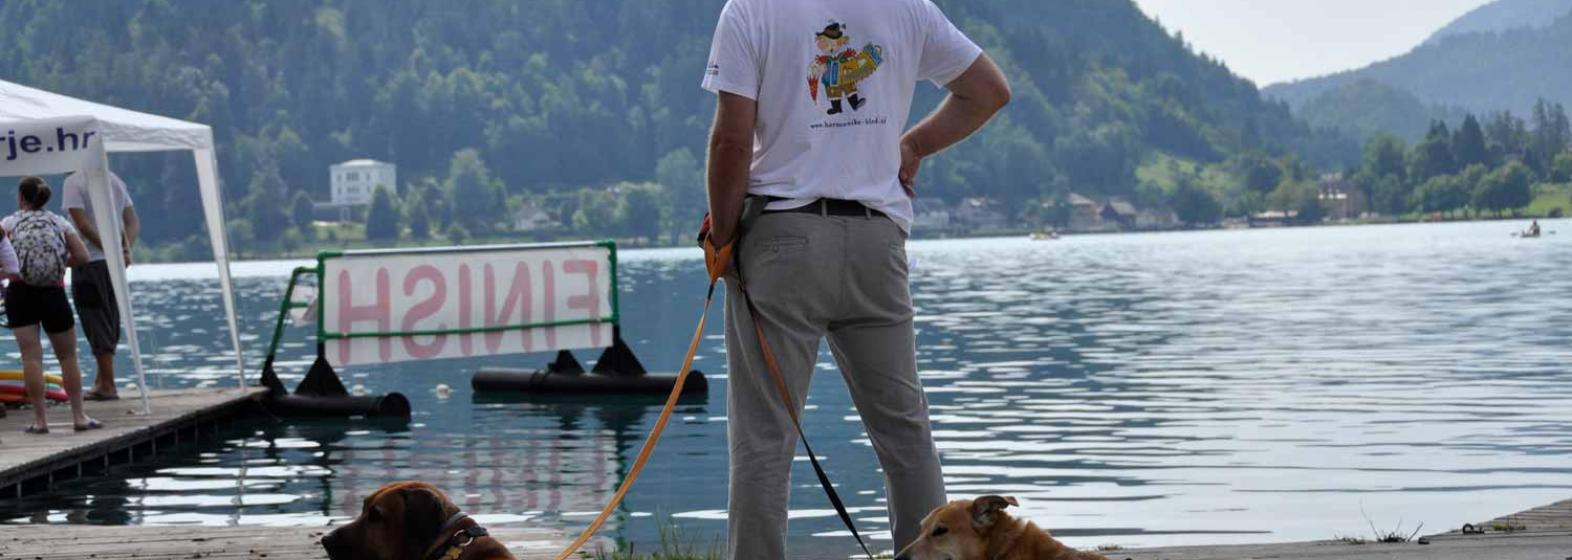 Bled Swimming Challenge 2018 02